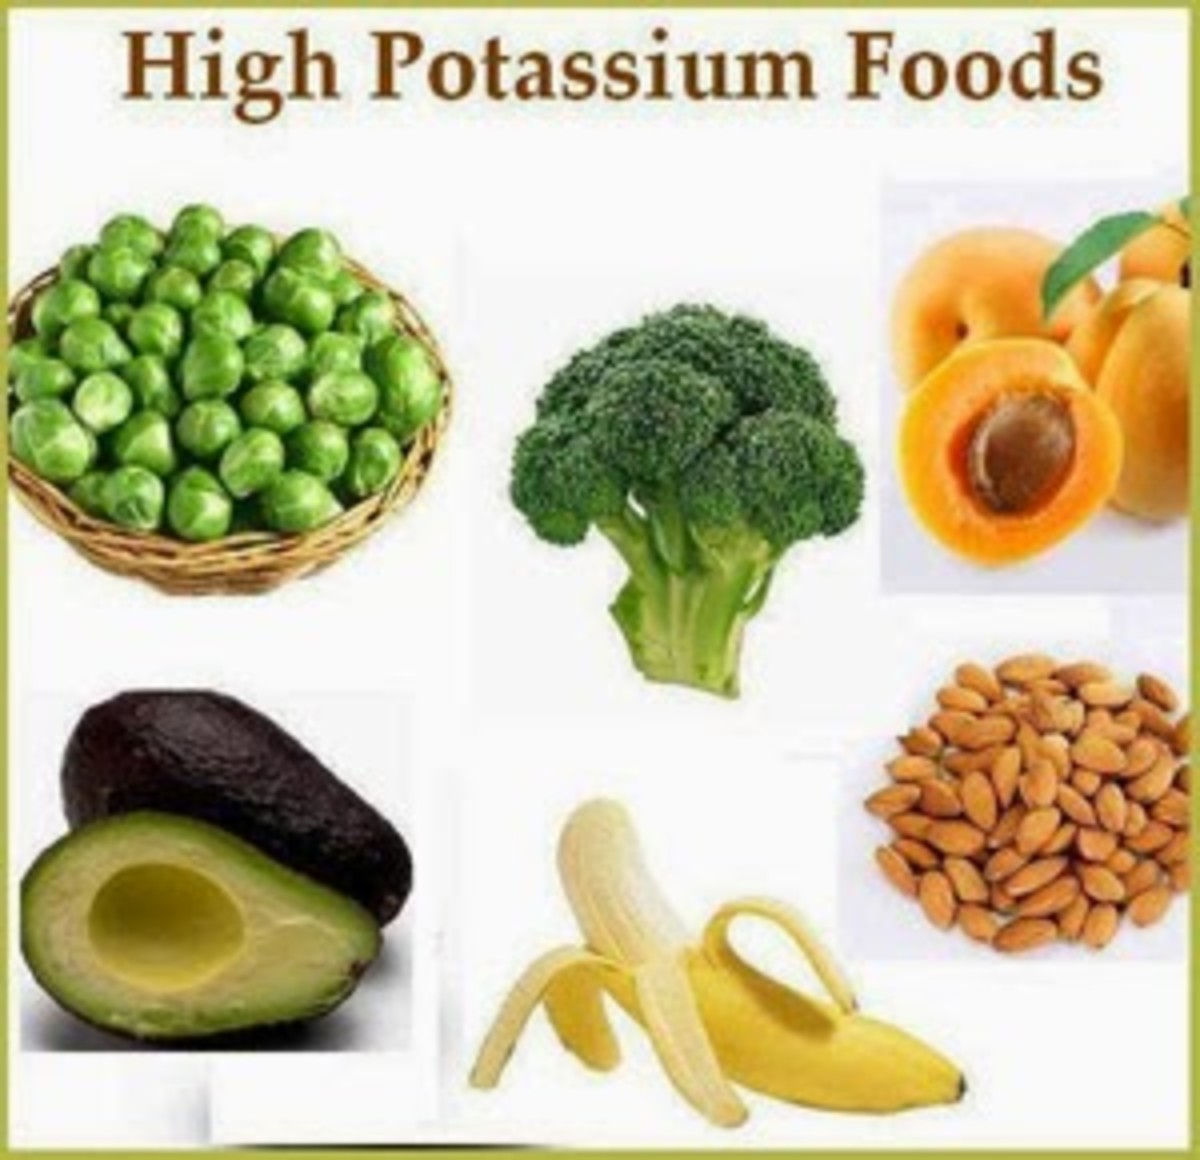 High potassium foods such as brussel sprouts, broccoli, avacado, apricots, bananas and almonds are super foods when it comes to changing your Hypokalemia diet.